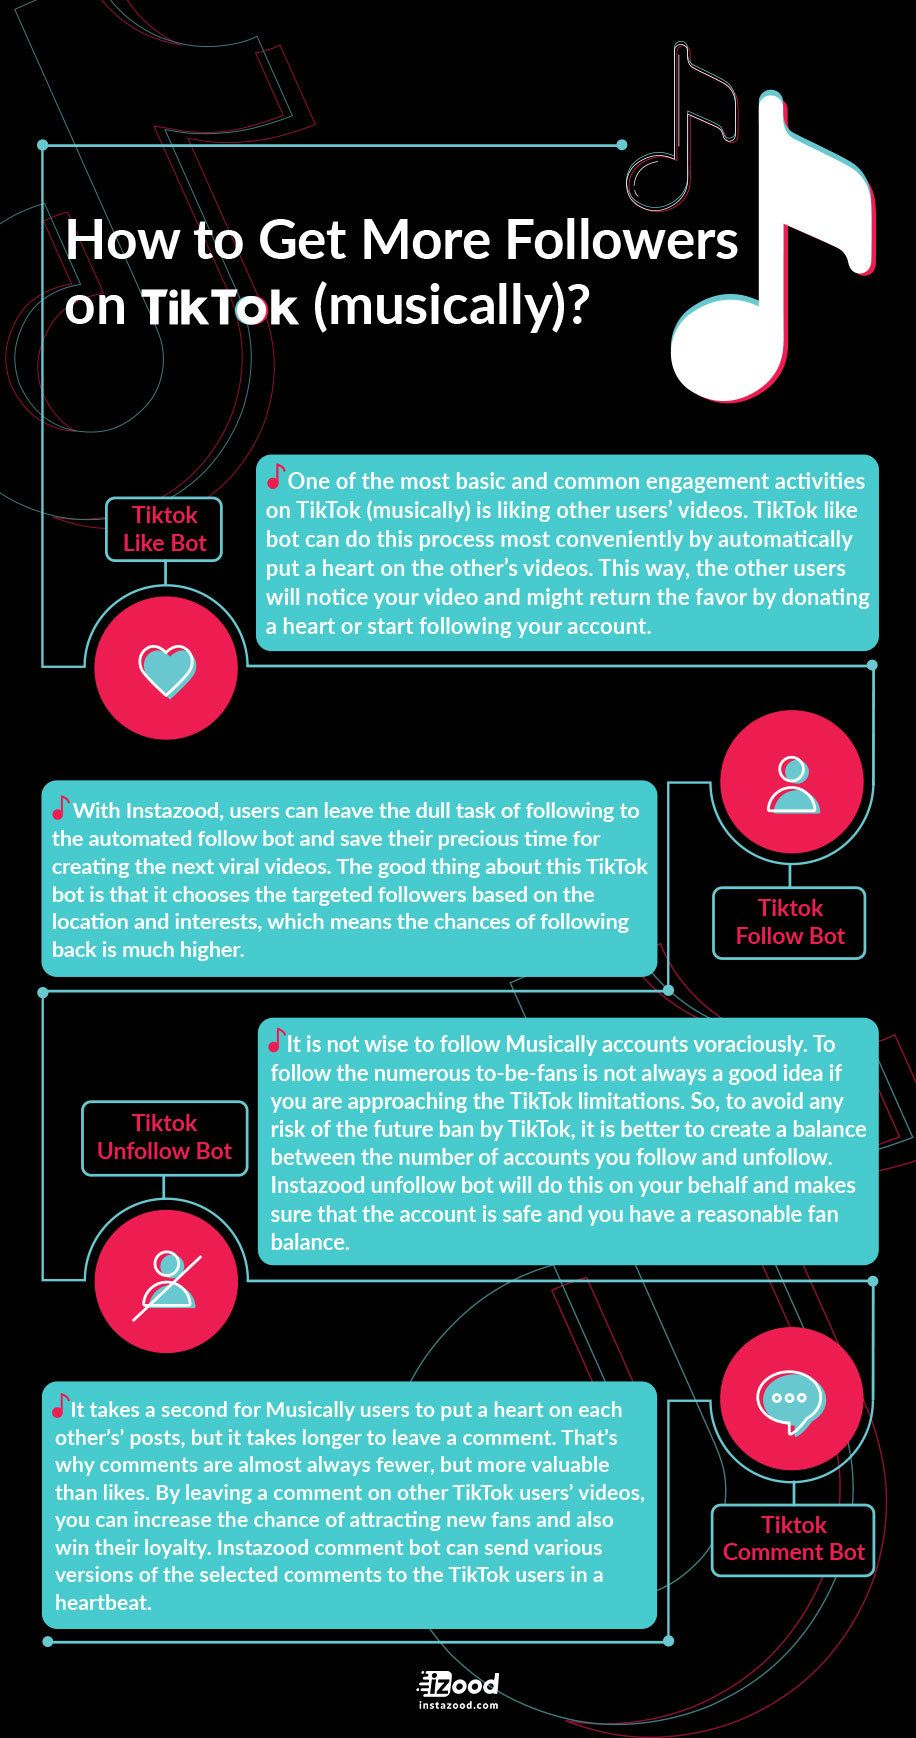 How To Get More Followers On Tiktok Musically Instazood Blog Get More Followers How To Get Followers Infographic Marketing